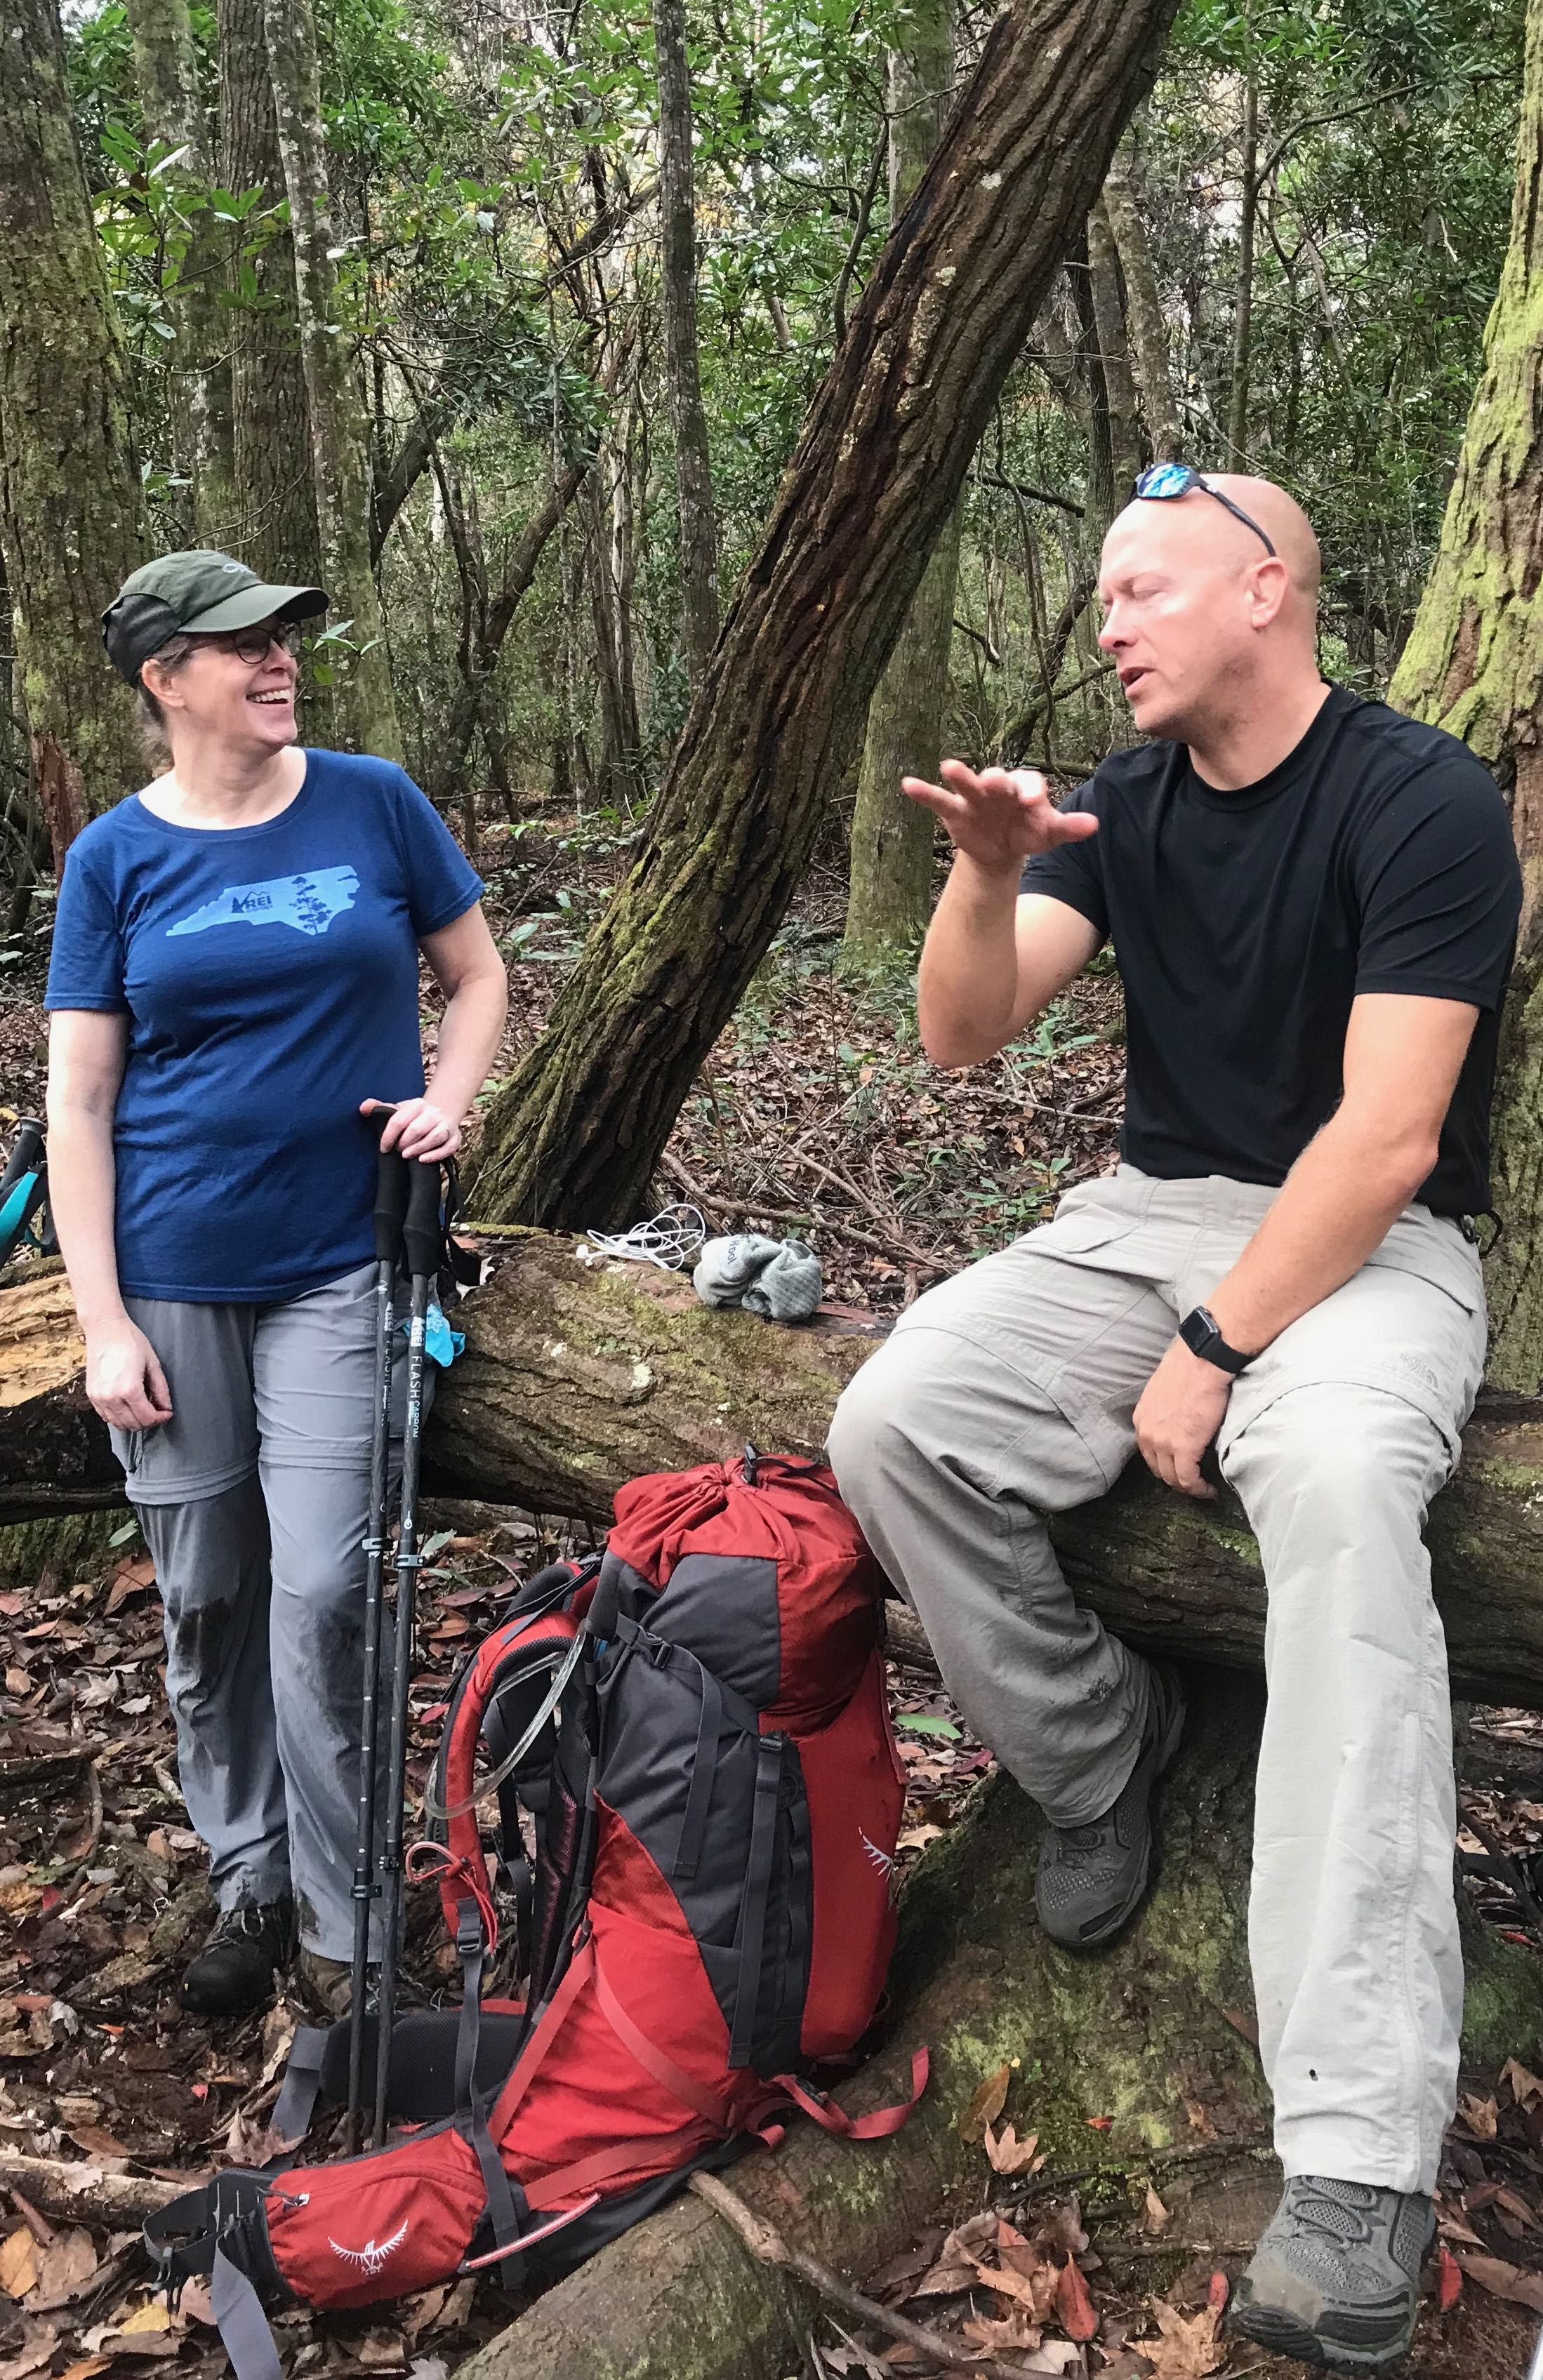 Backpacking philosophy shared on the trail.